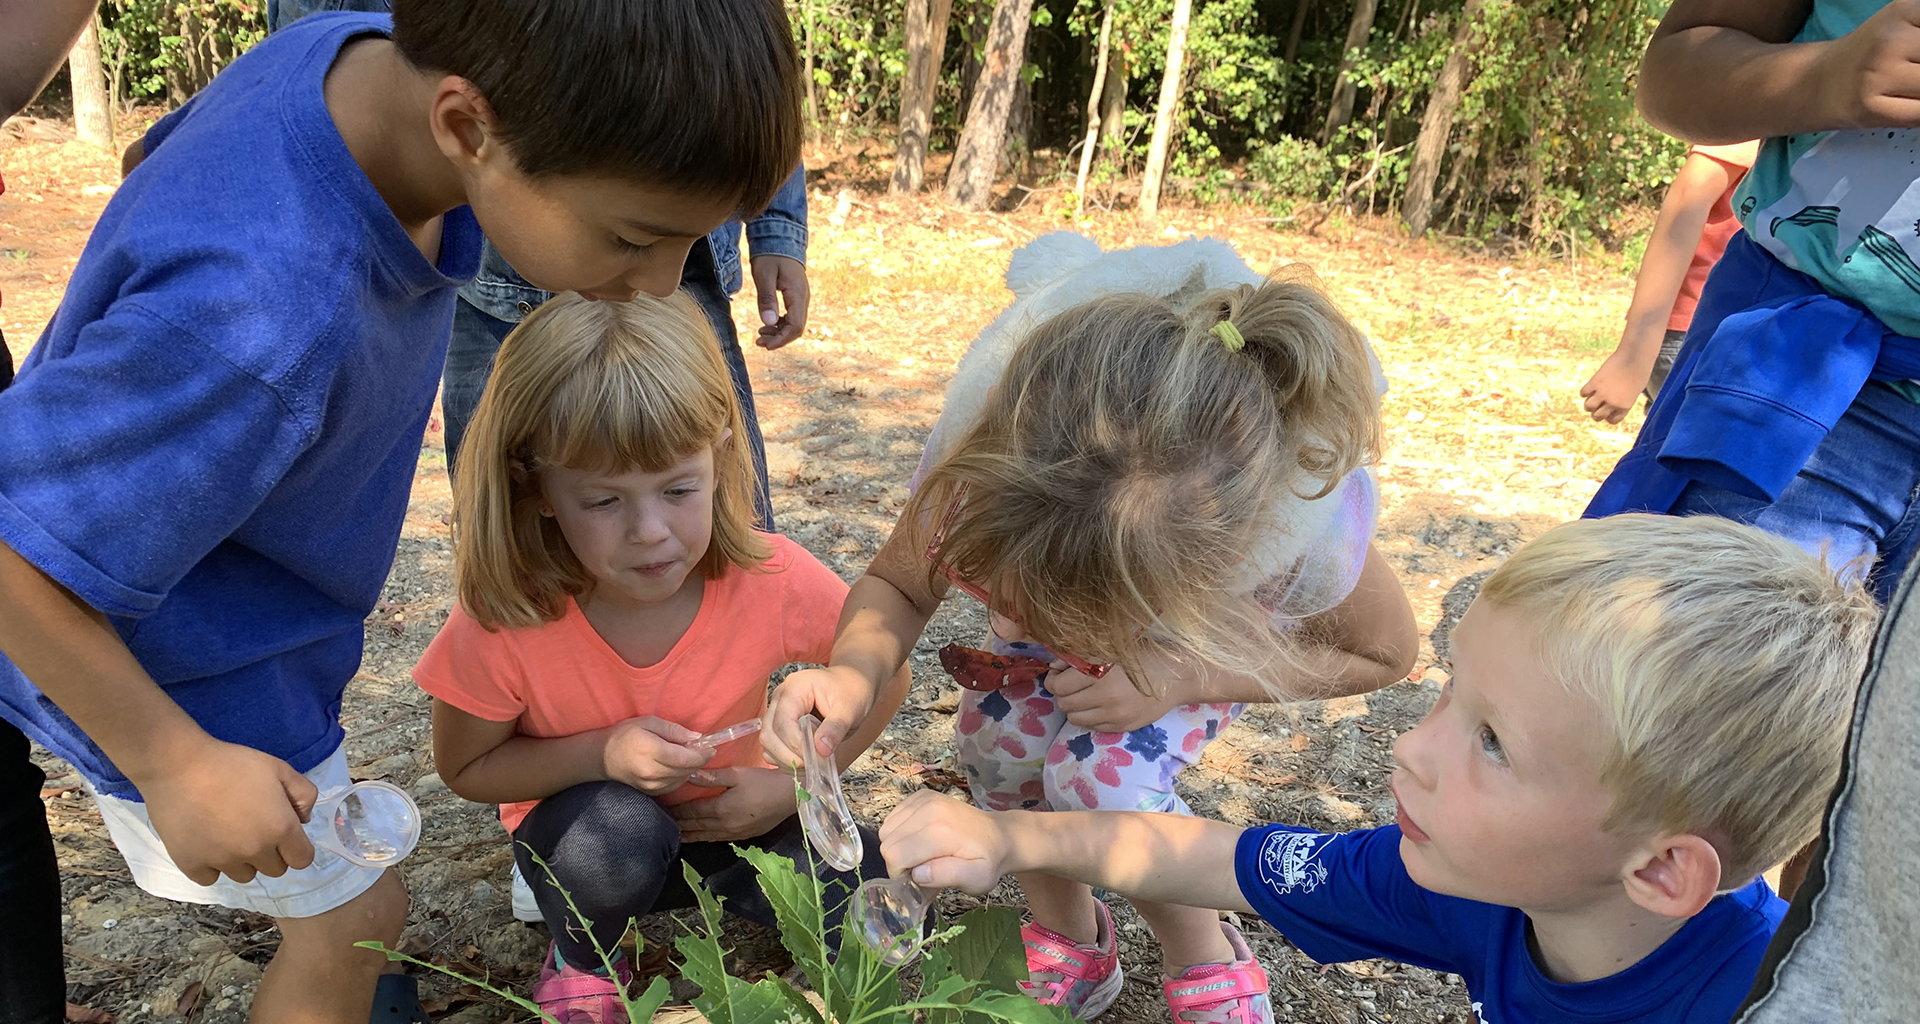 Students outside examining a plant with magnifying glasses.